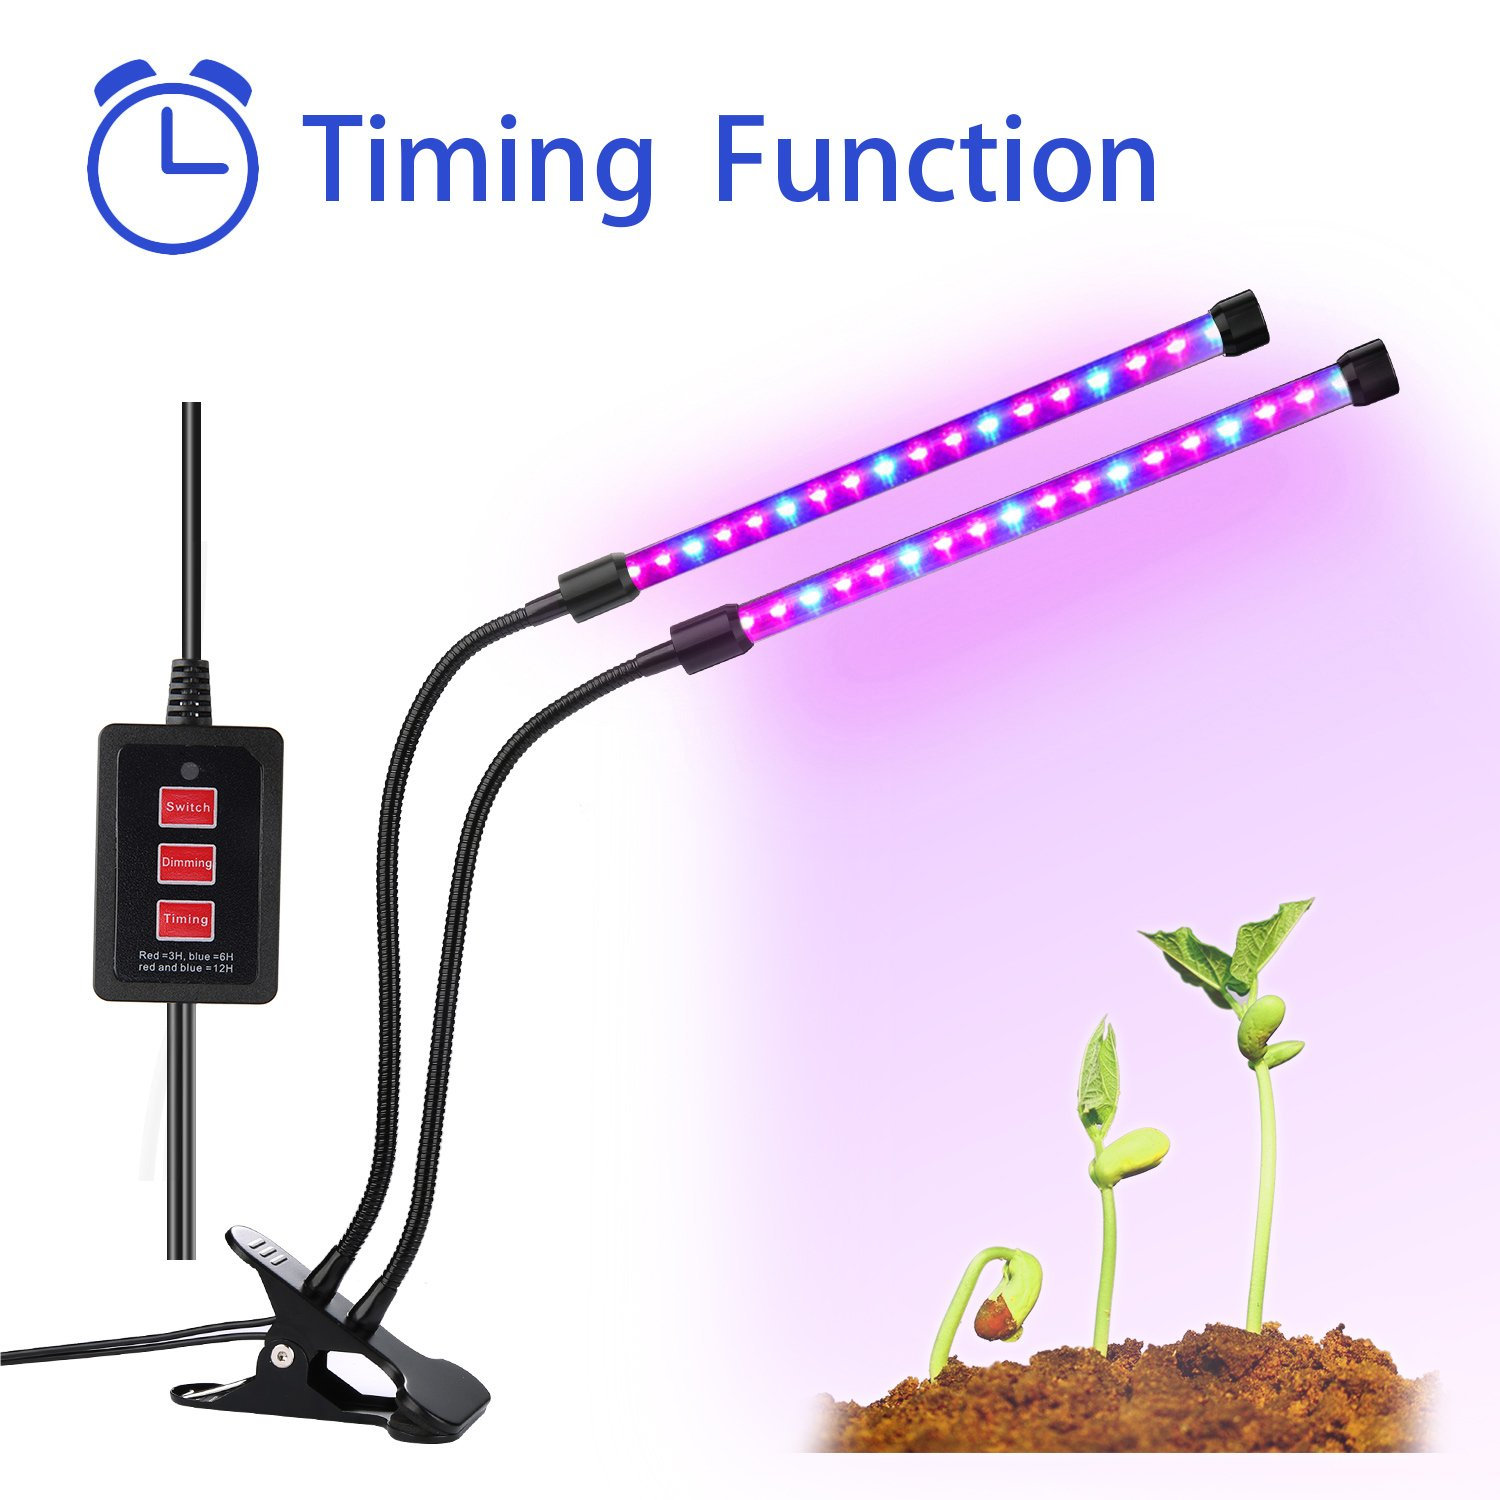 Lovebay Timing Function Dual Head Grow Light 36LED 4 Dimmable Levels Grow Lamp  Bulbs With Adjustable